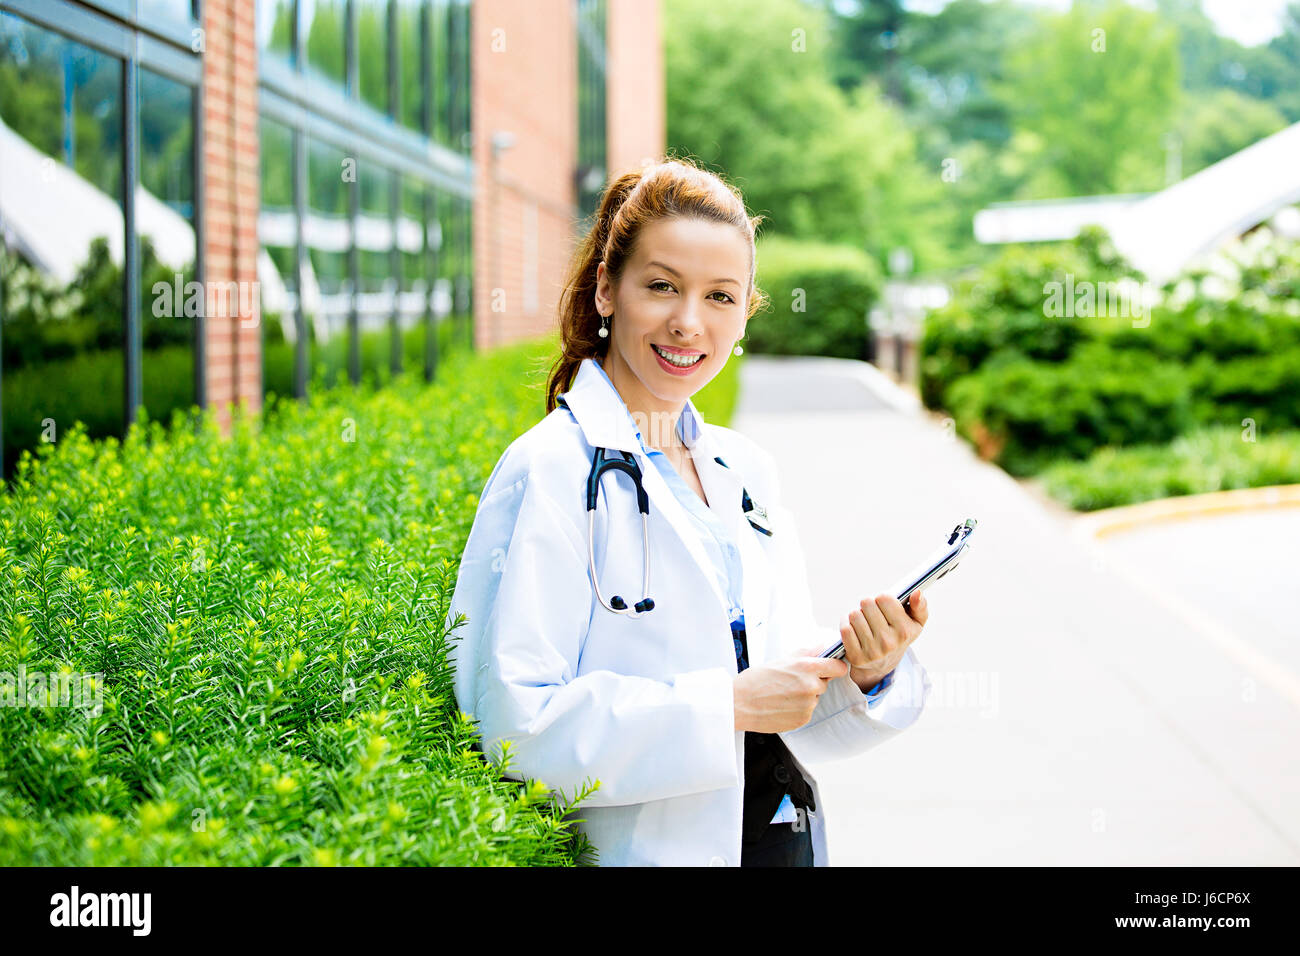 Closeup portrait young confident female doctor healthcare professional holding patient chart isolated background - Stock Image